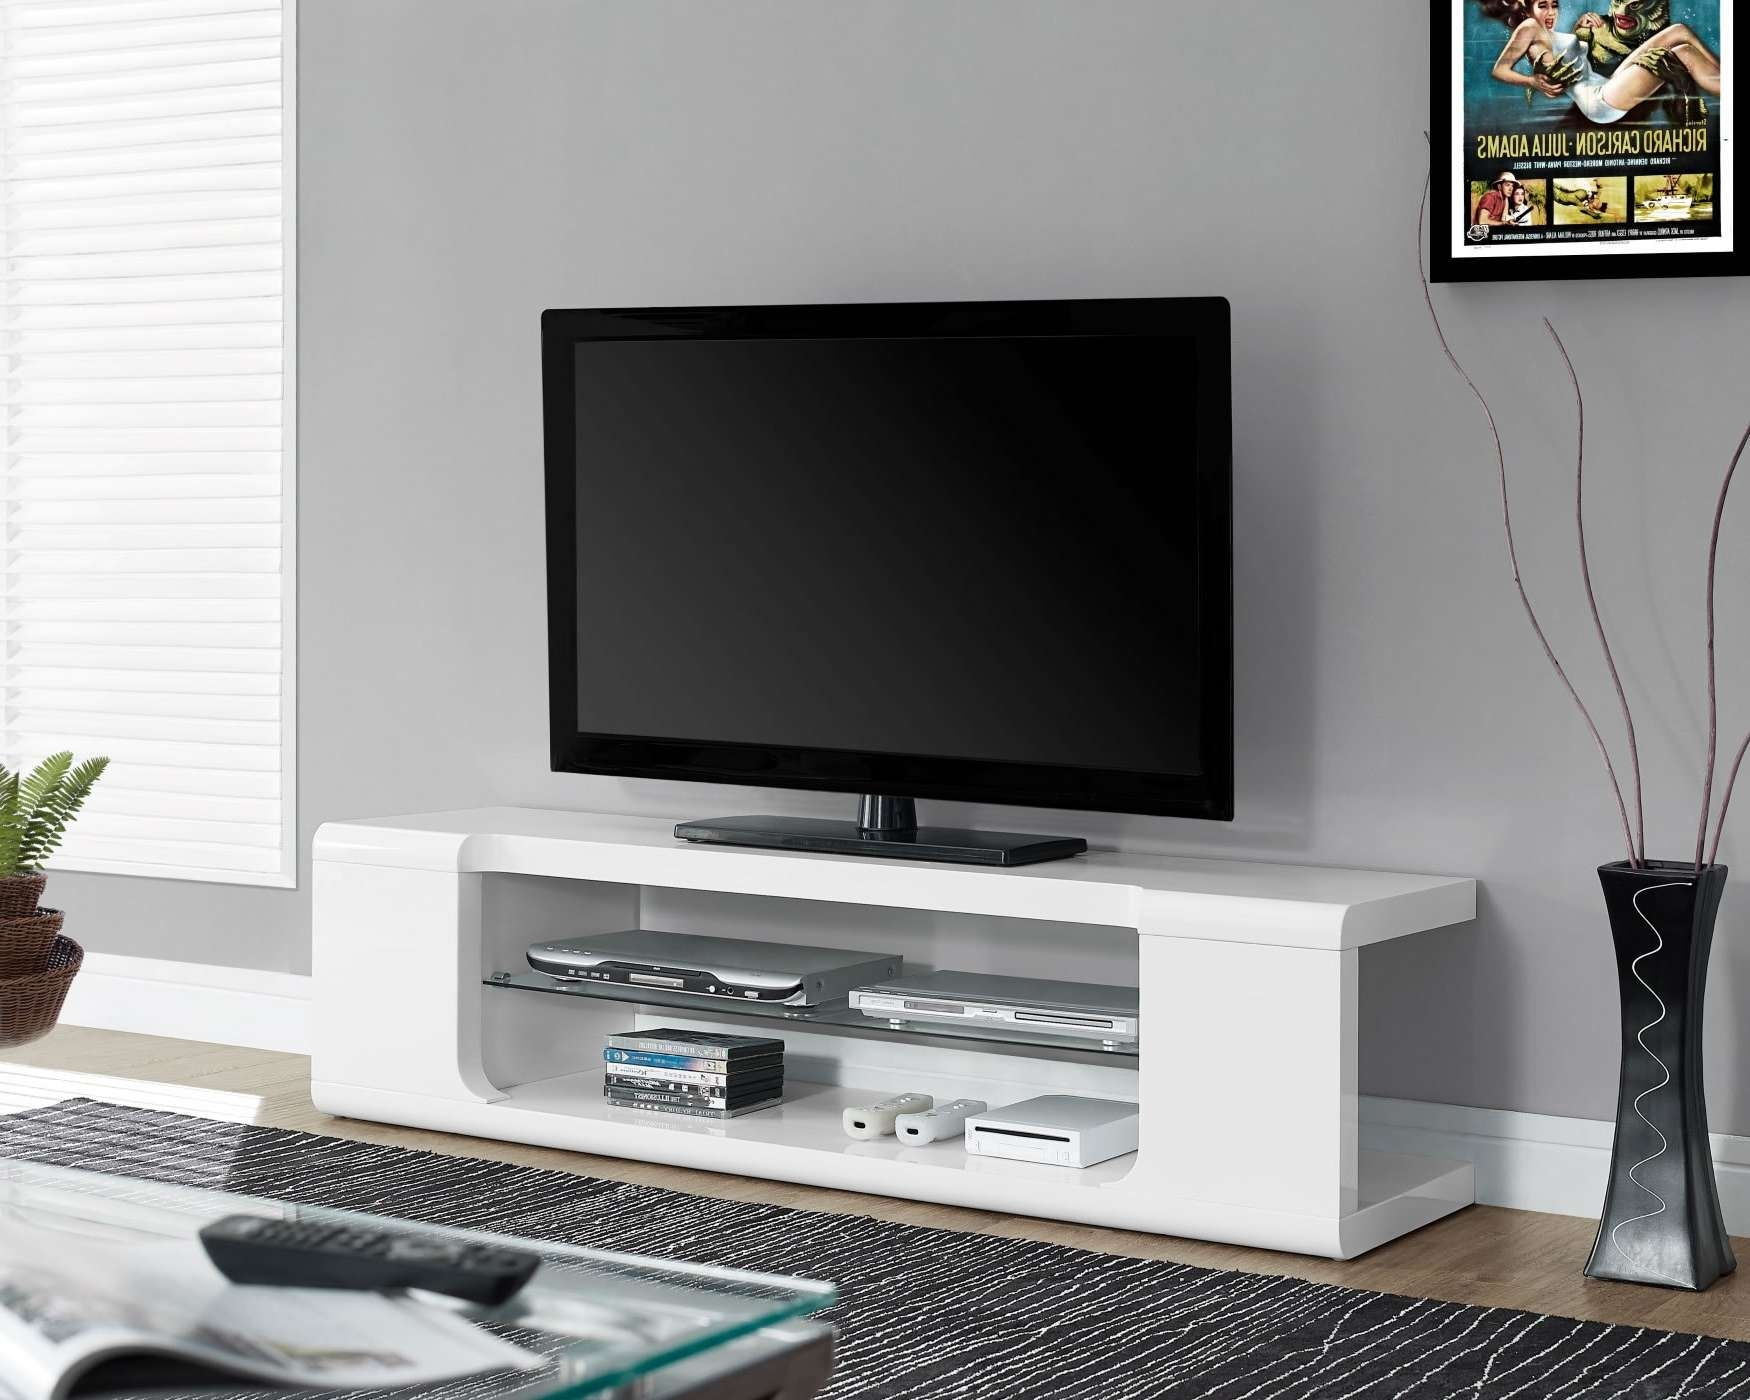 Spec Designsmonarch Specialties Raley Tv Stand (White) – I Pertaining To Tv Stands White (View 15 of 20)